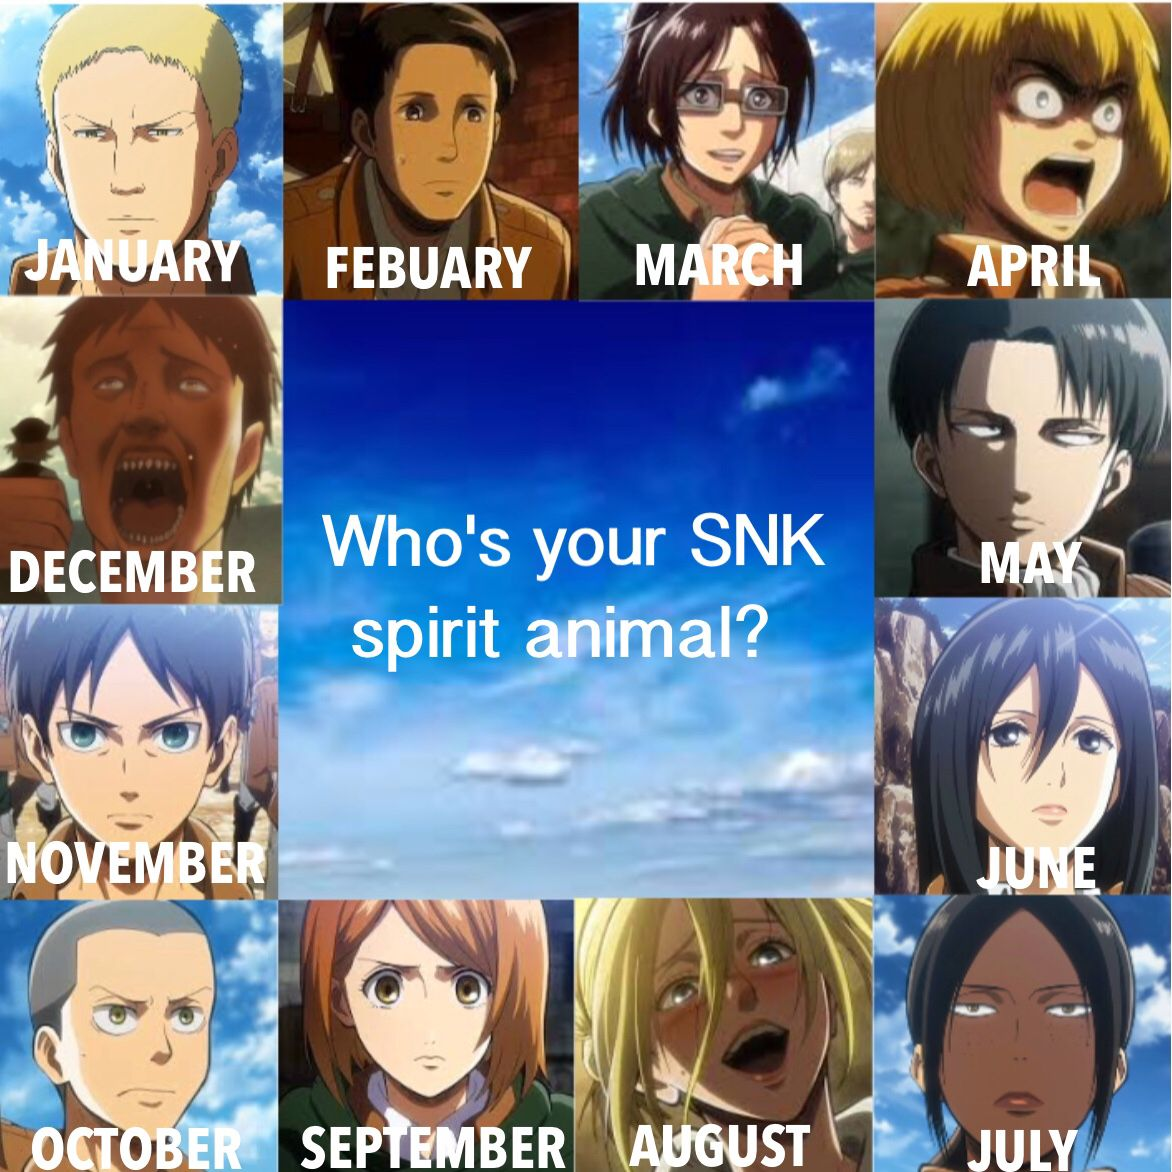 Mine is Eren ^_^ But in truth it's actually Hanji. She is my inspiration in all things. Who's yours?